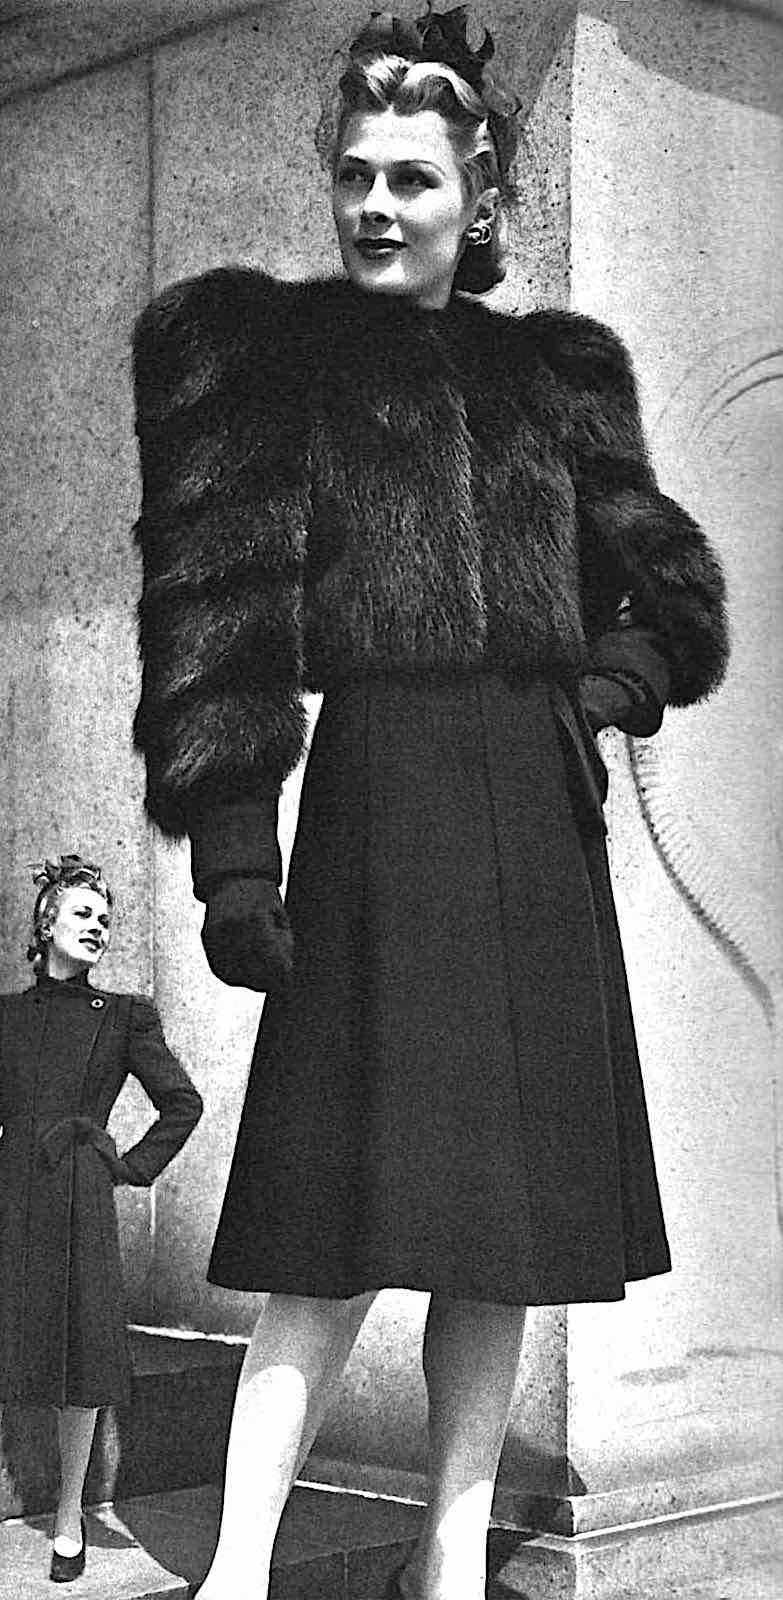 1941 hubba hubba hey toots, a fashion model in furs